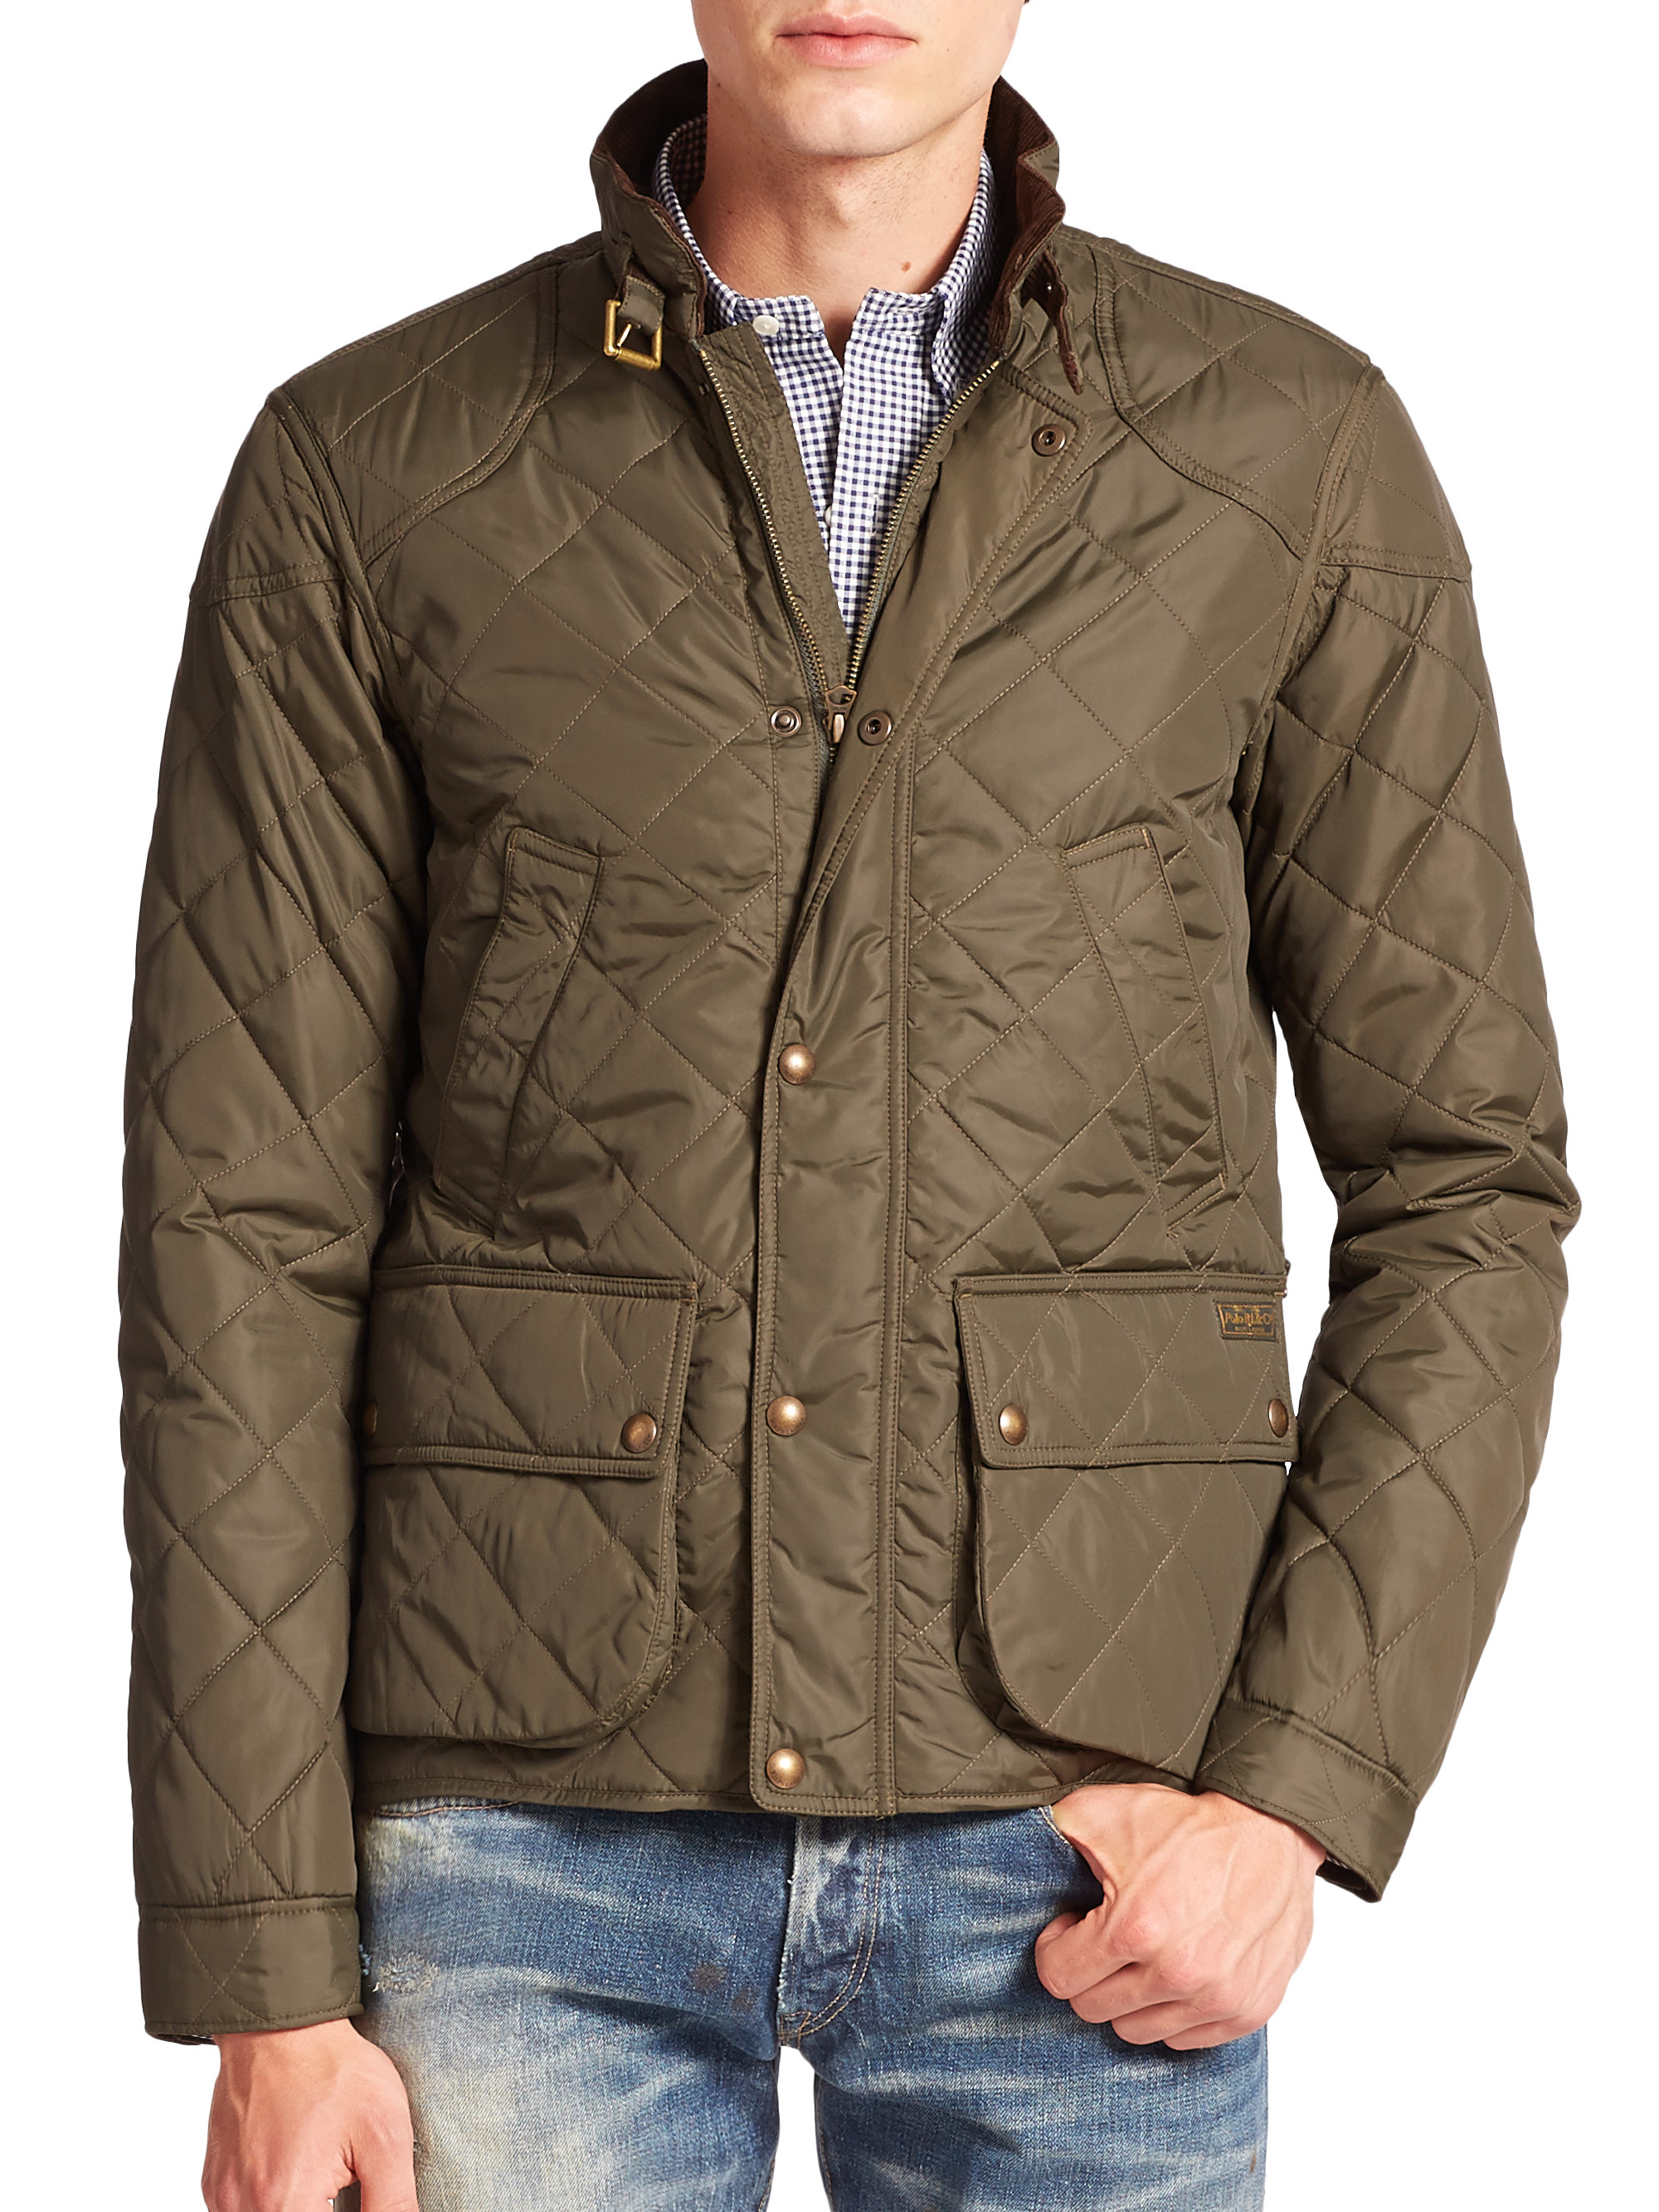 Pebble Beach Polo >> Polo ralph lauren Cadwell Quilted Bomber Jacket in Green for Men (olive) | Lyst